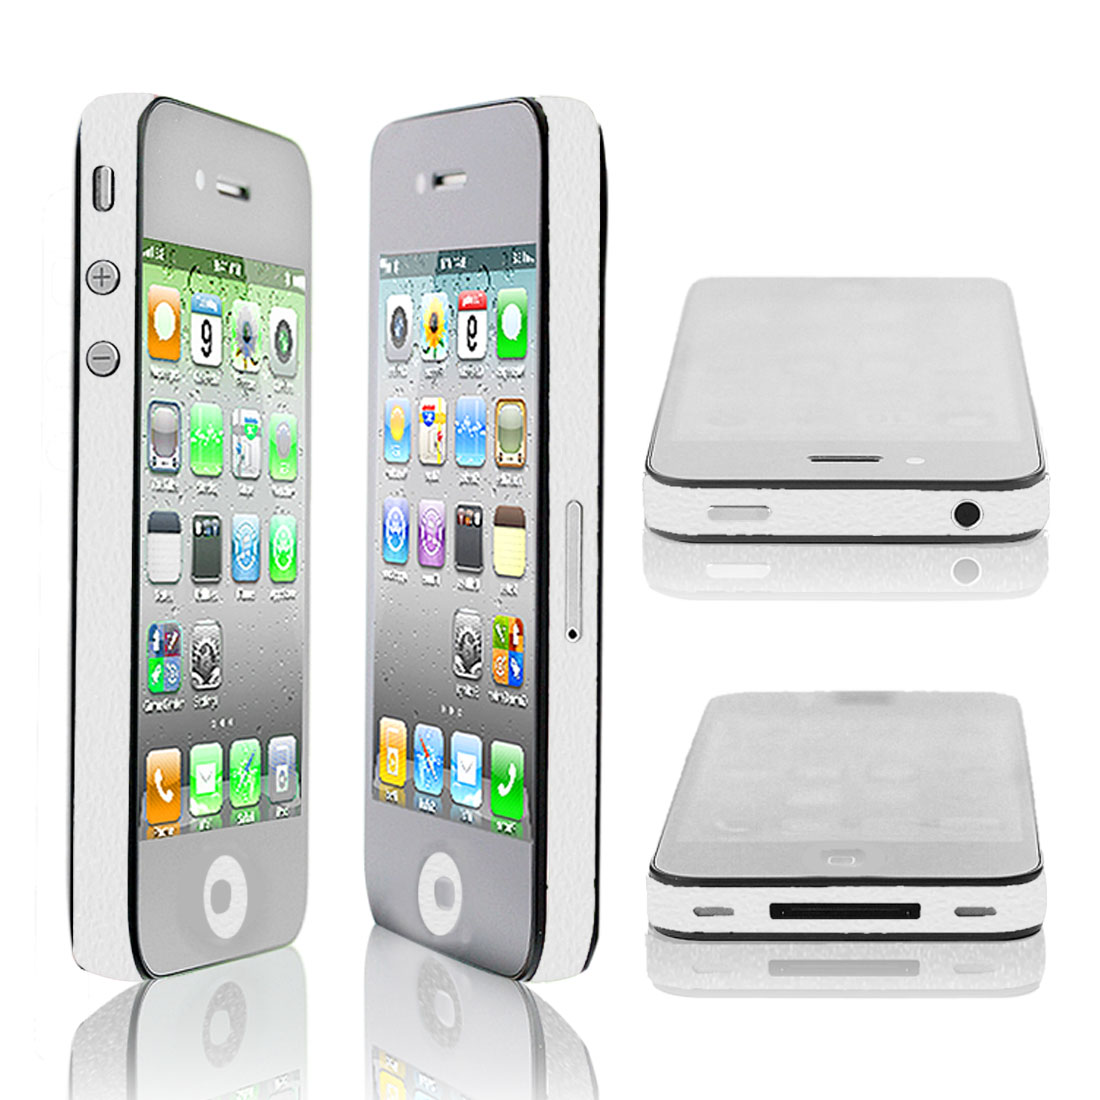 DIY Edge Wrap Decal Side Sticker Button Decal Cover White for Apple iPhone 4 4S